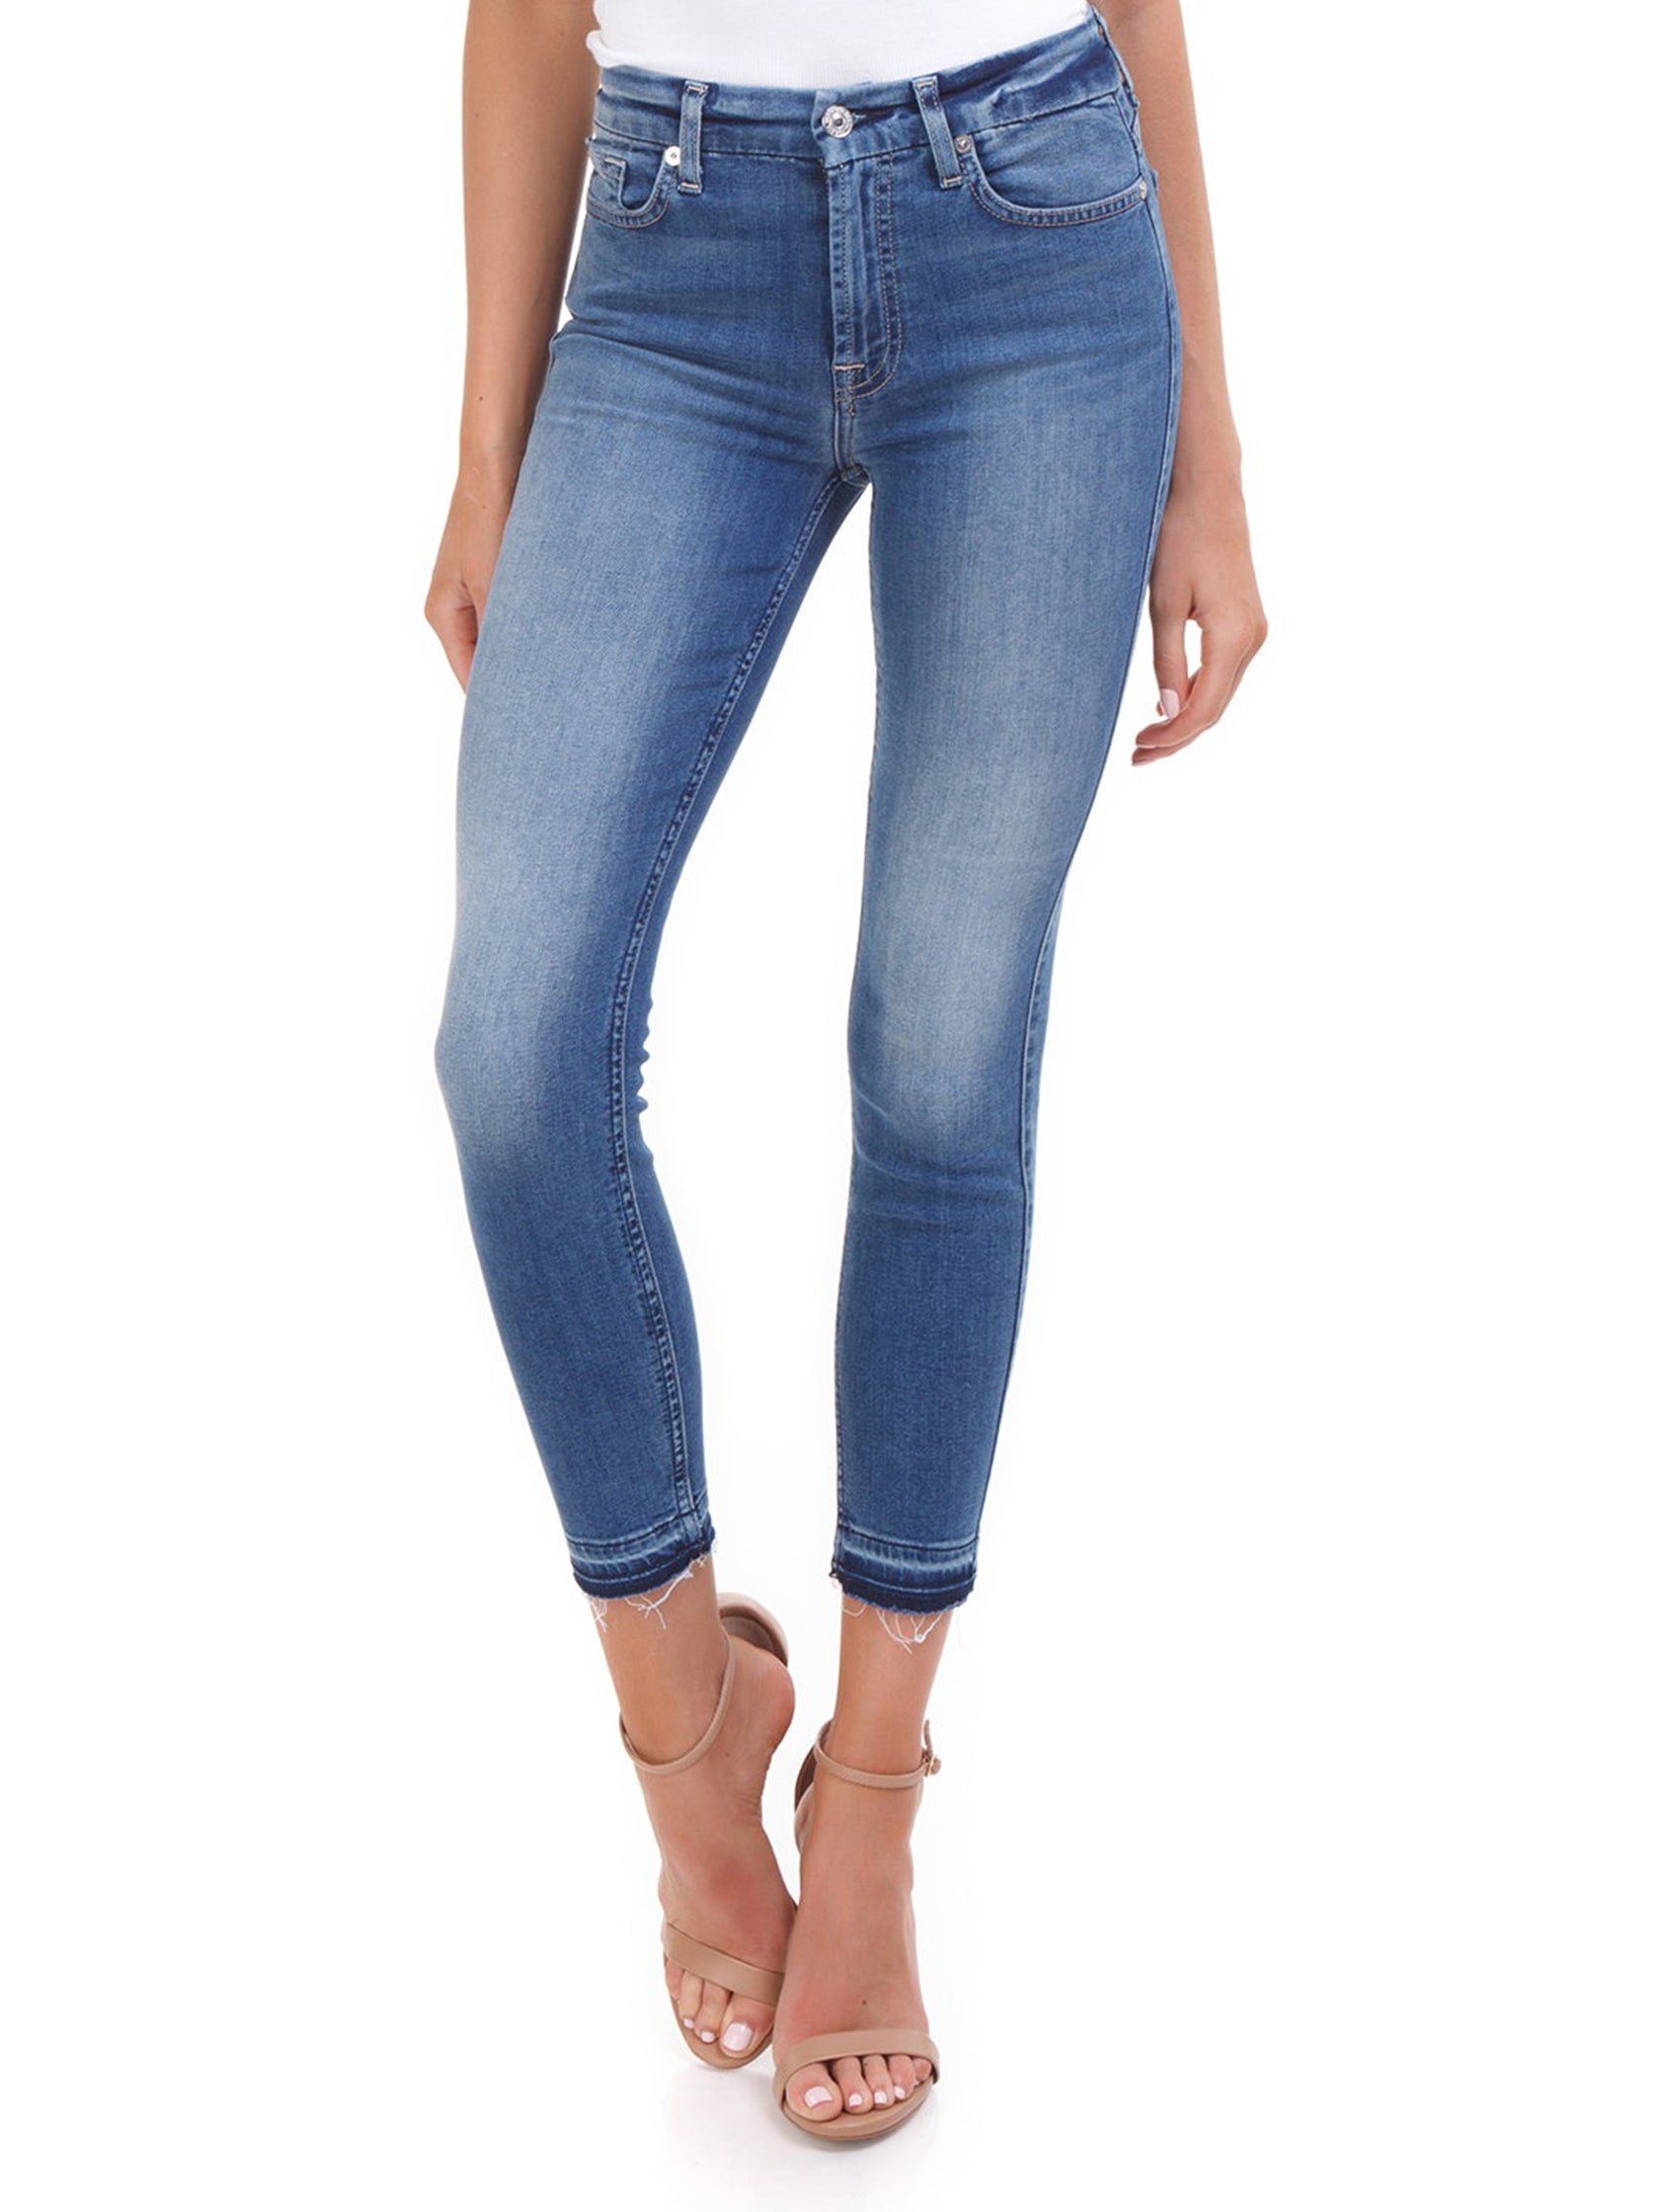 Girl outfit in a denim rental from 7 For All Mankind called Ankle Skinny Jeans